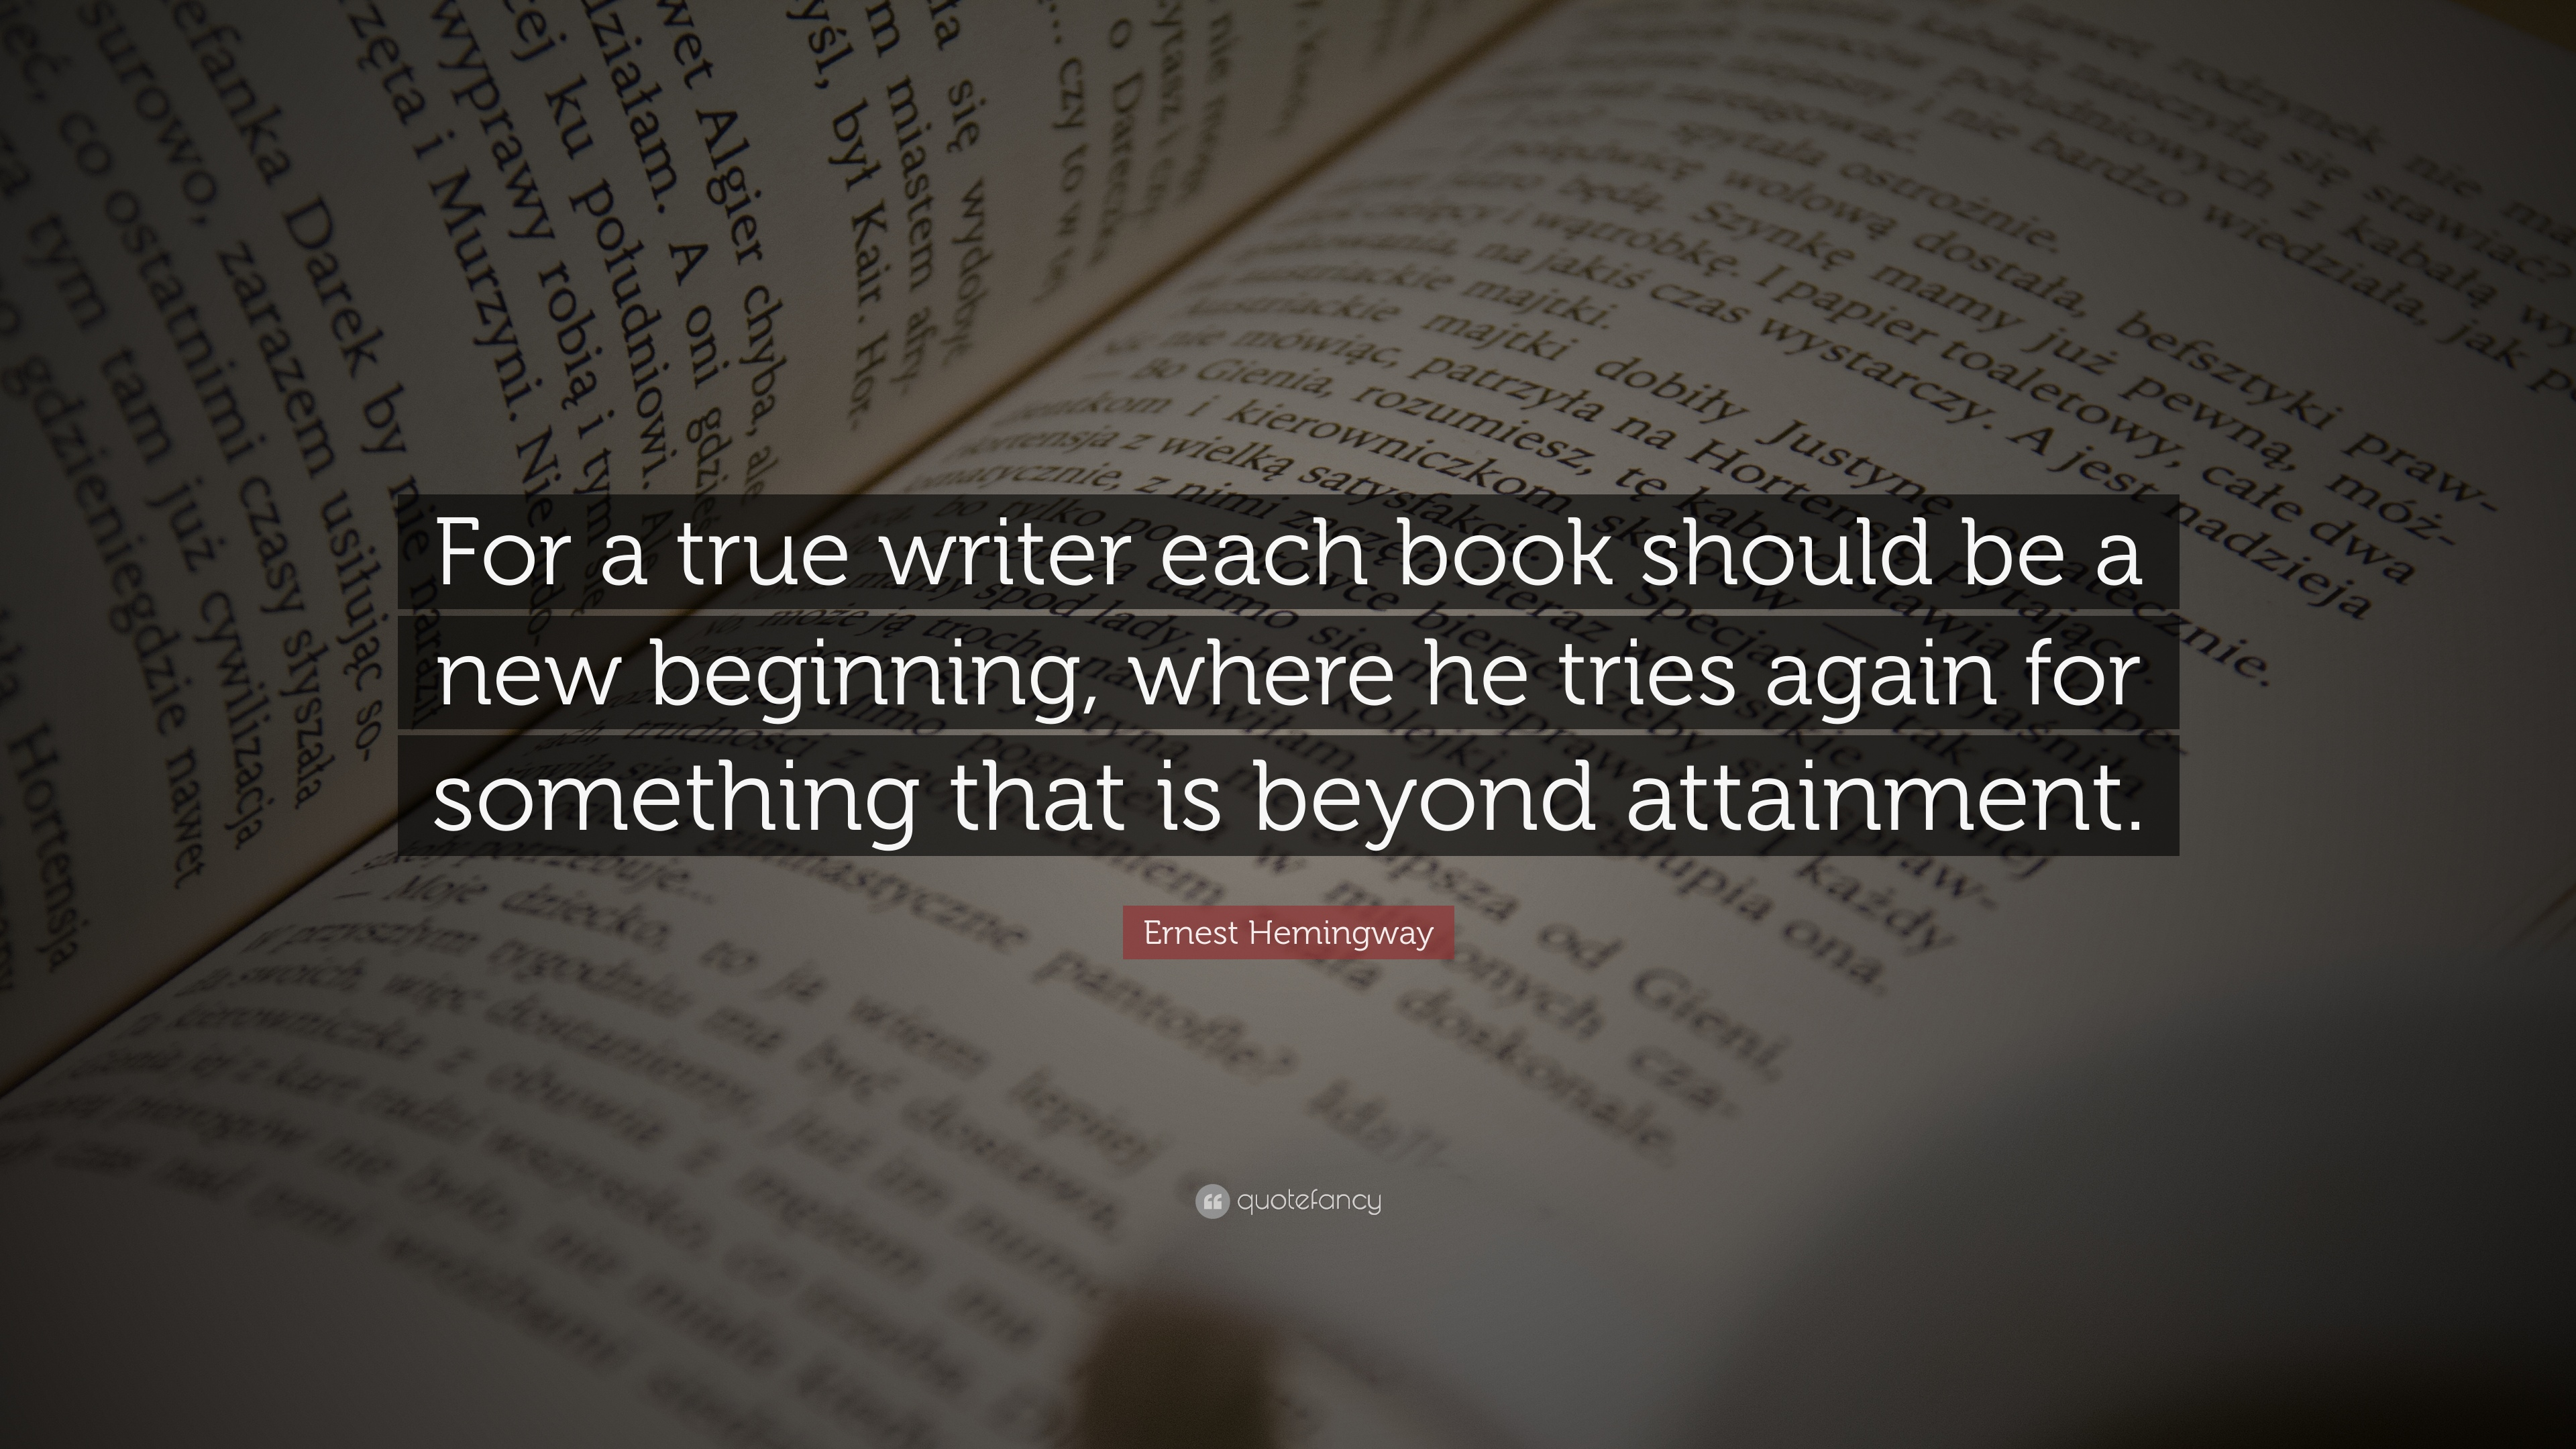 Ernest Hemingway Quote For A True Writer Each Book Should Be A New